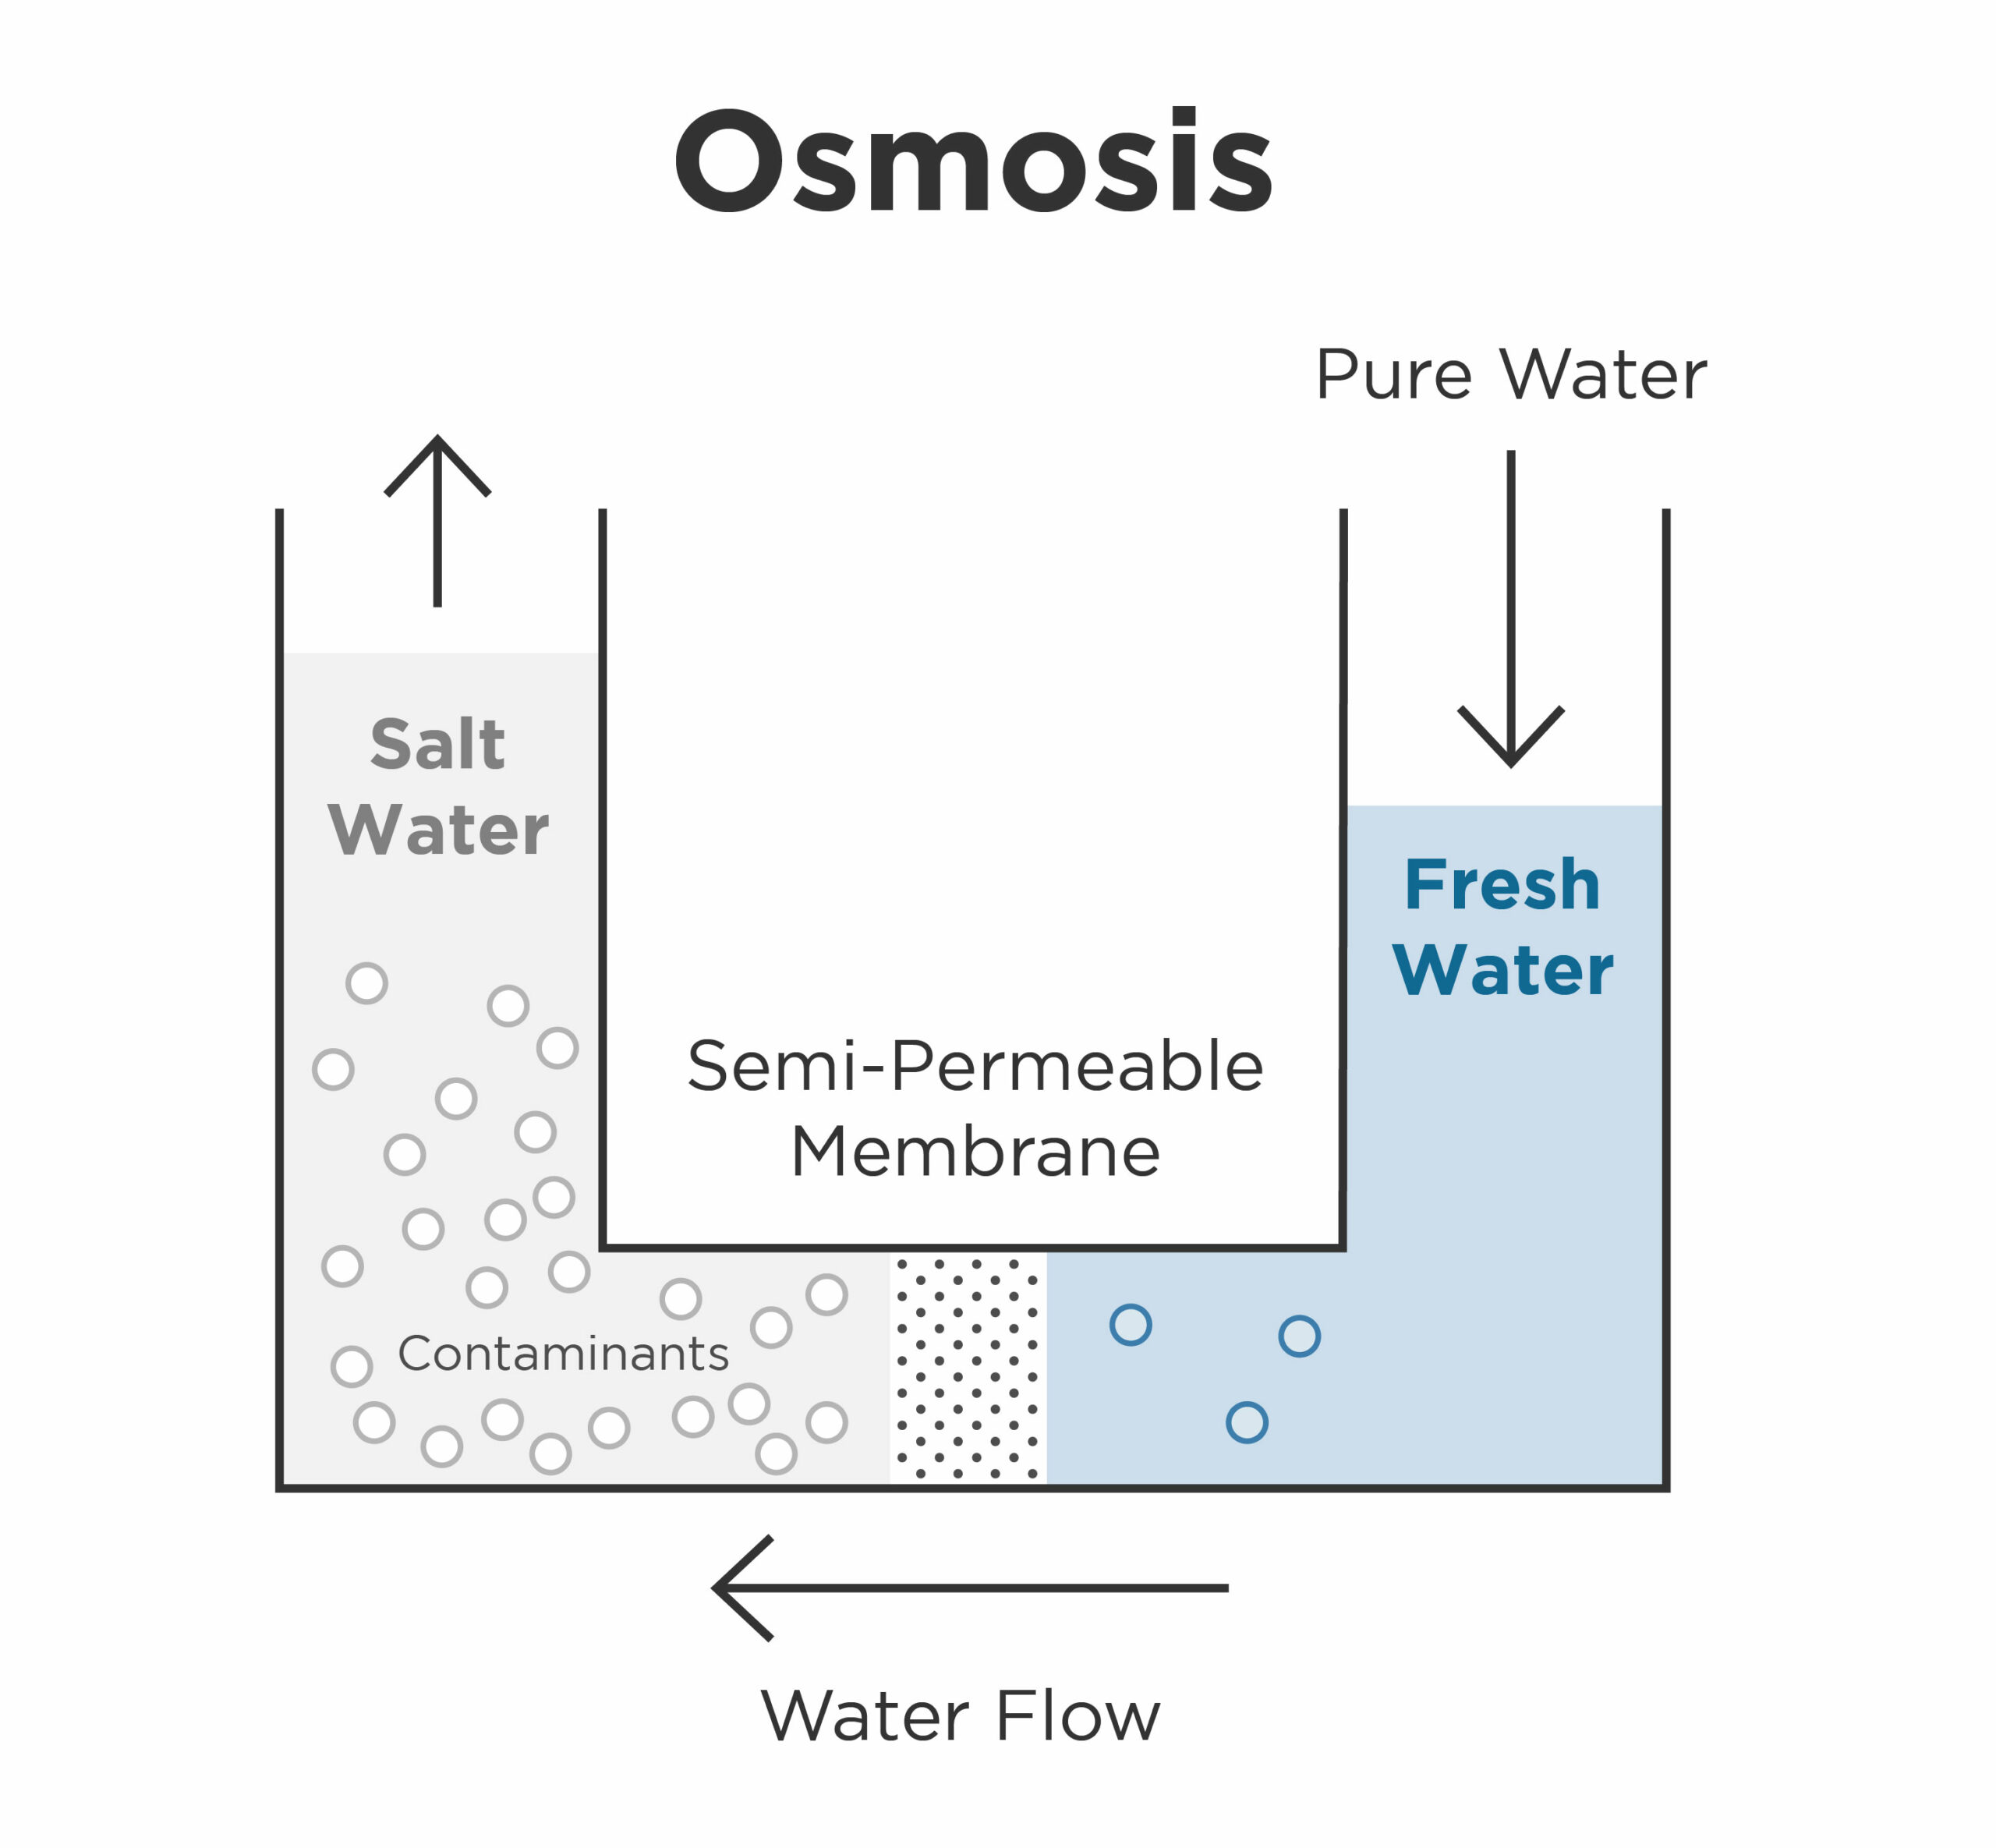 graphic - chart of osmosis